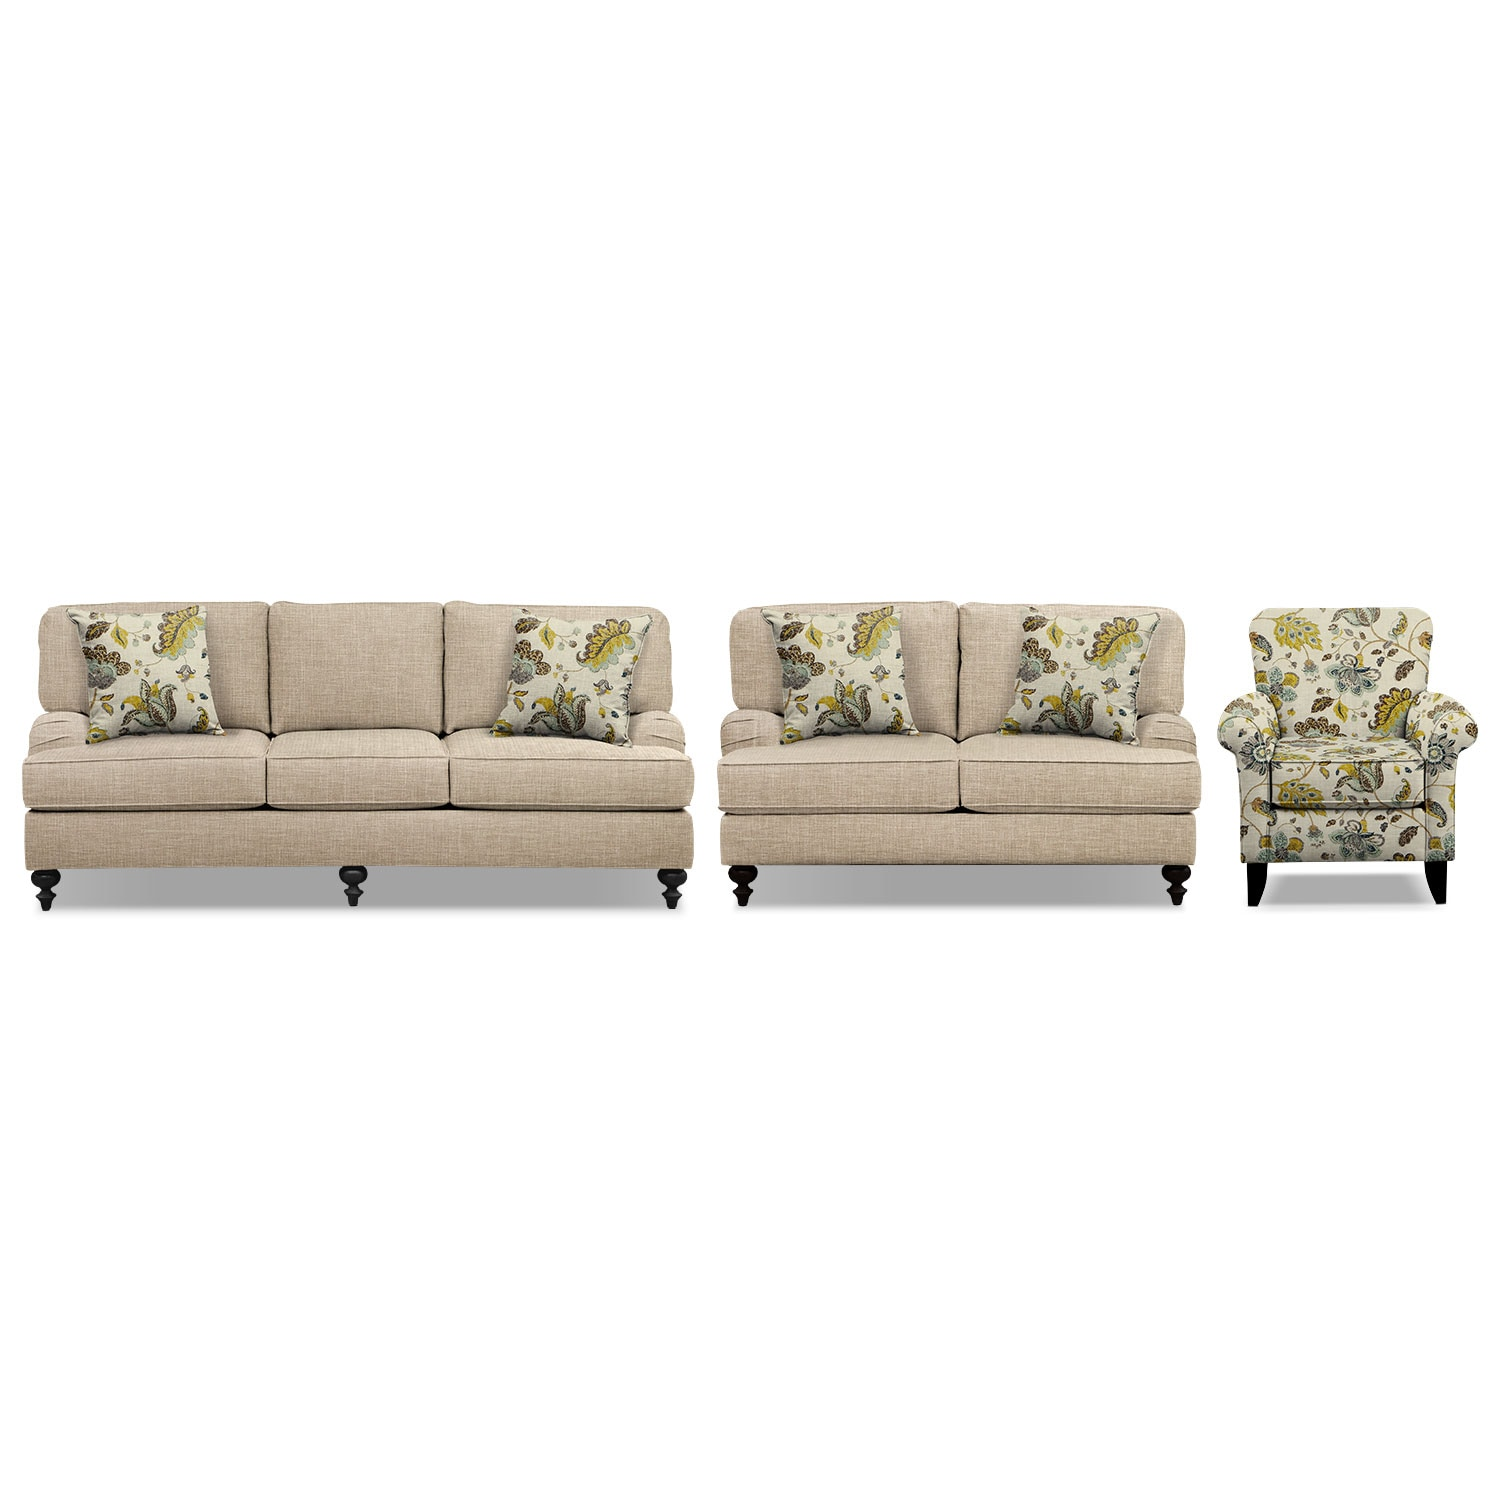 "Avery Taupe 86"" Sofa, 62"" Sofa and Accent Chair Set"